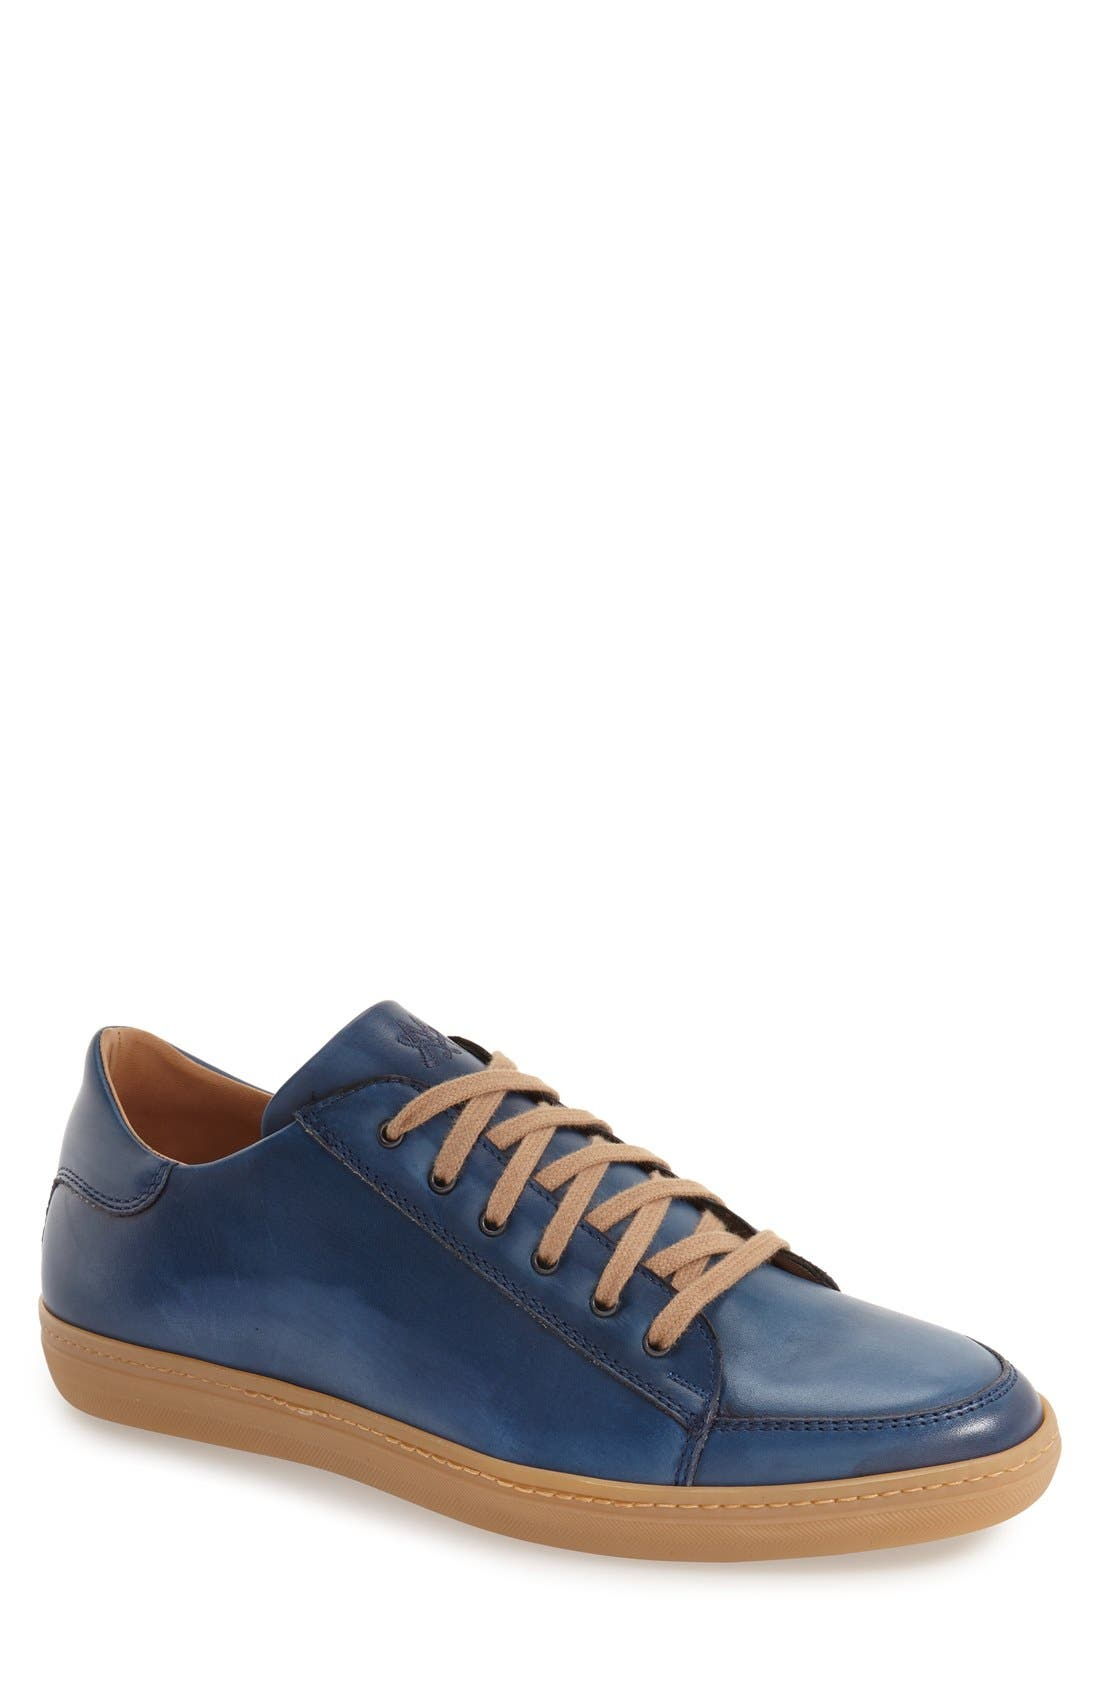 MEZLAN 'Masi' Lace-Up Sneaker in Blue